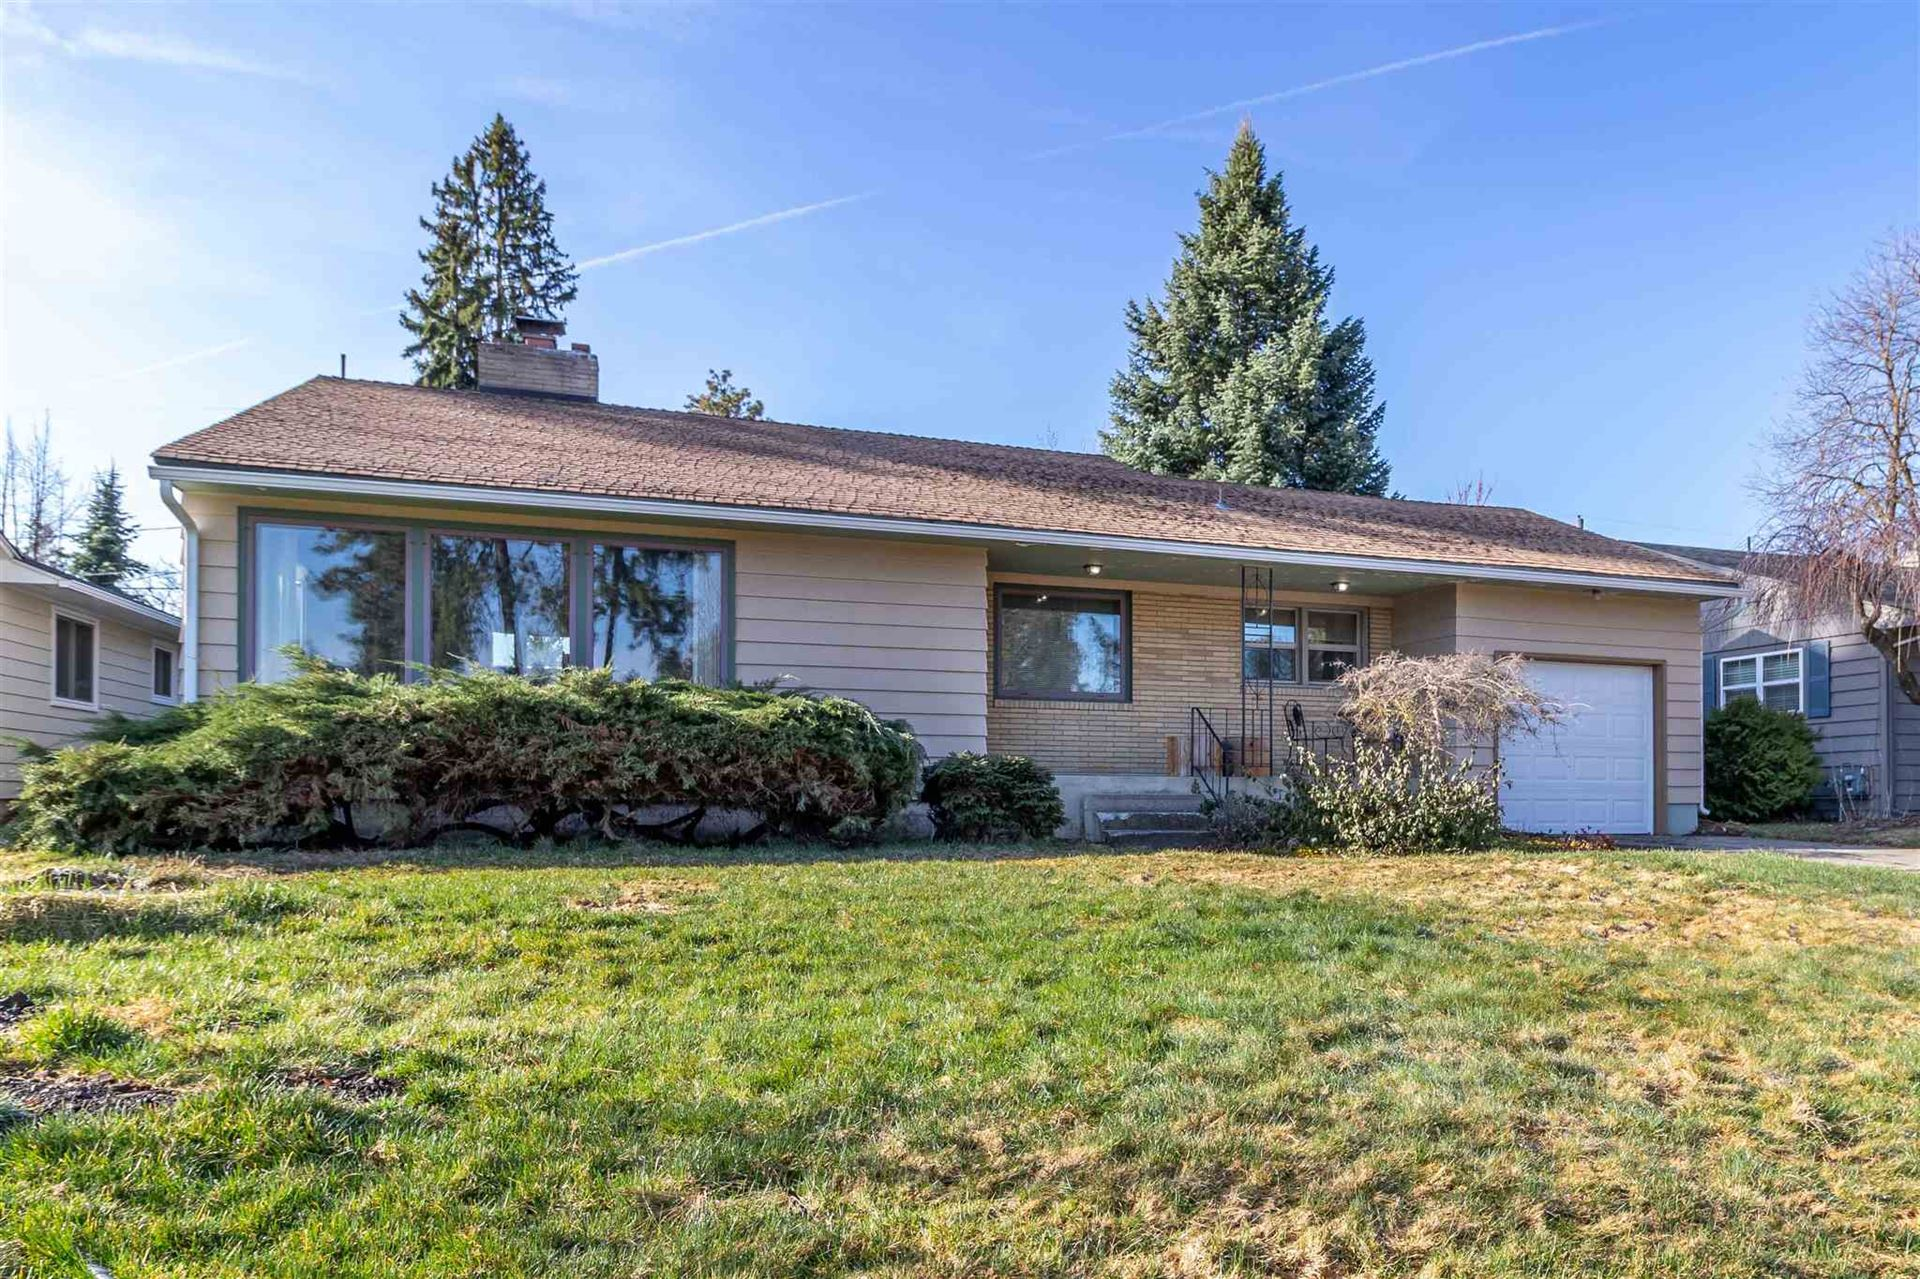 127 W 30th Ave, Spokane, WA 99203 - #: 202114108